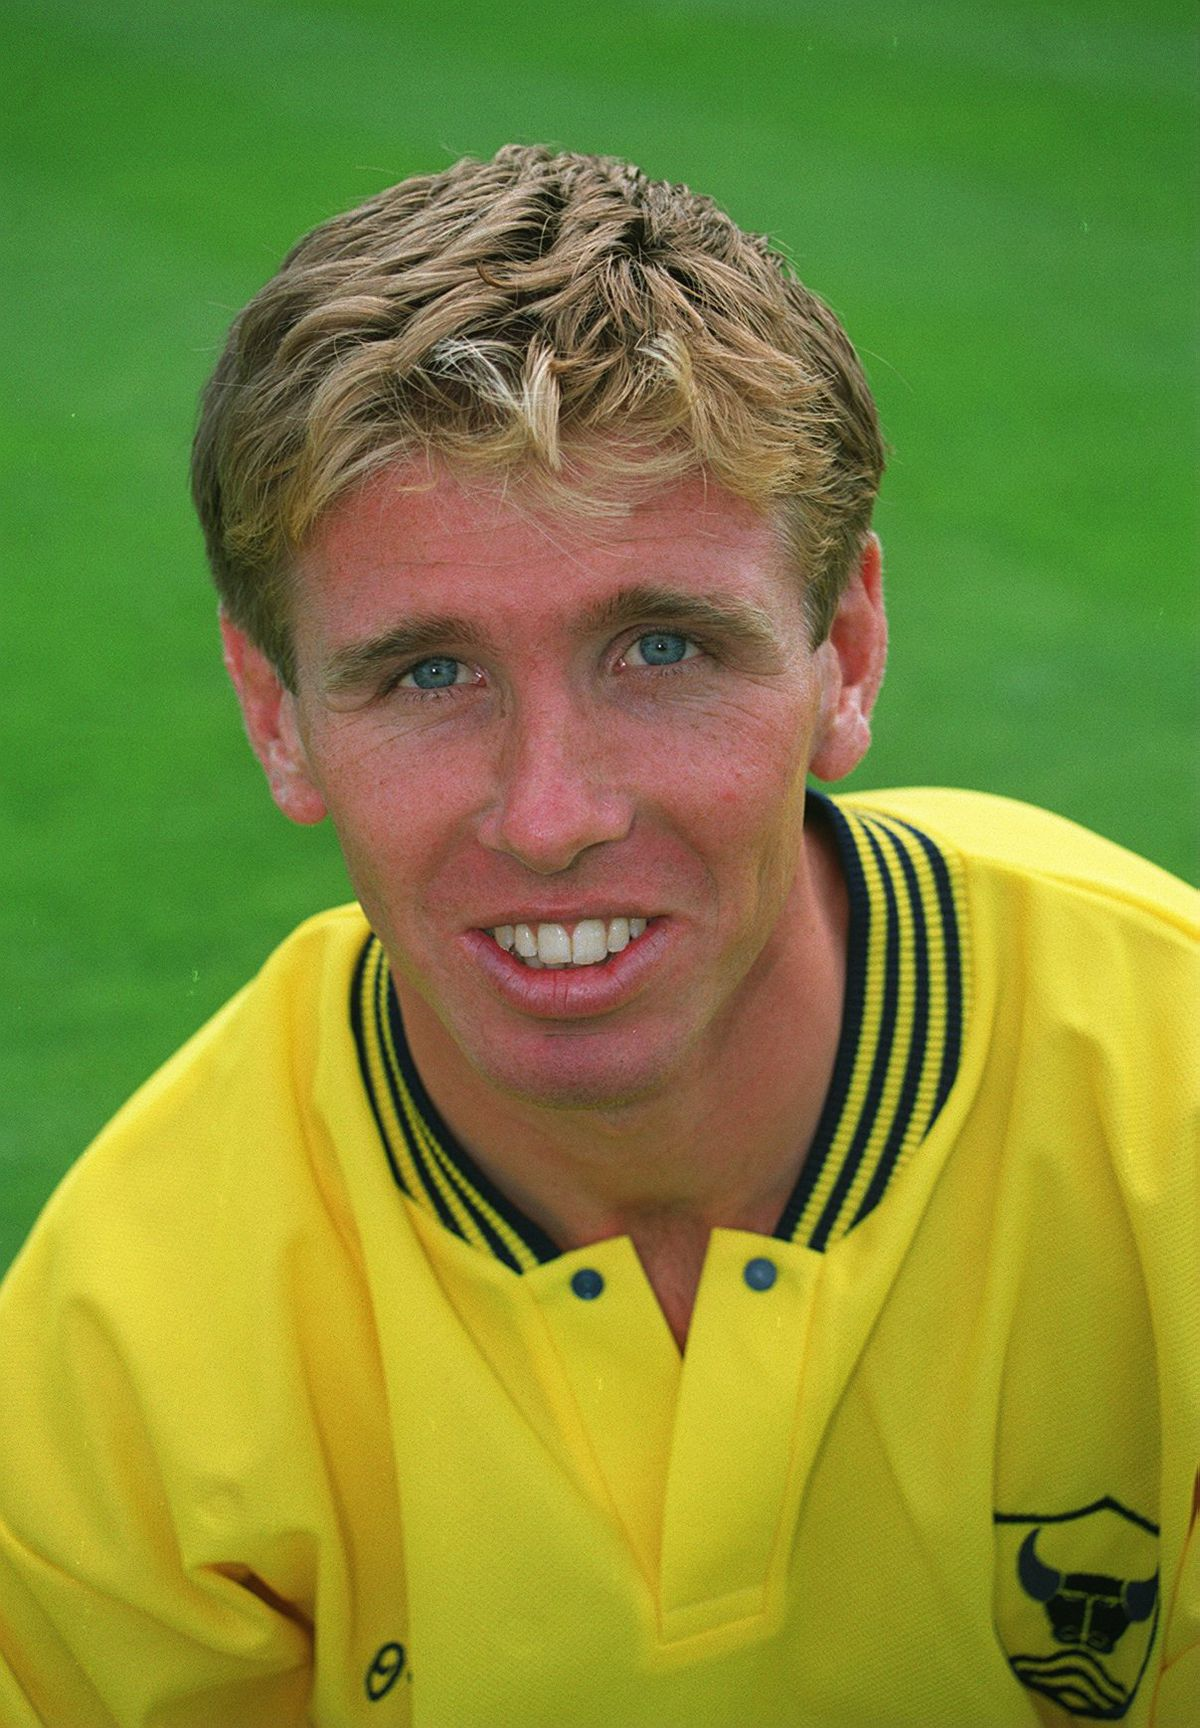 Soccer - Oxford United Photocall